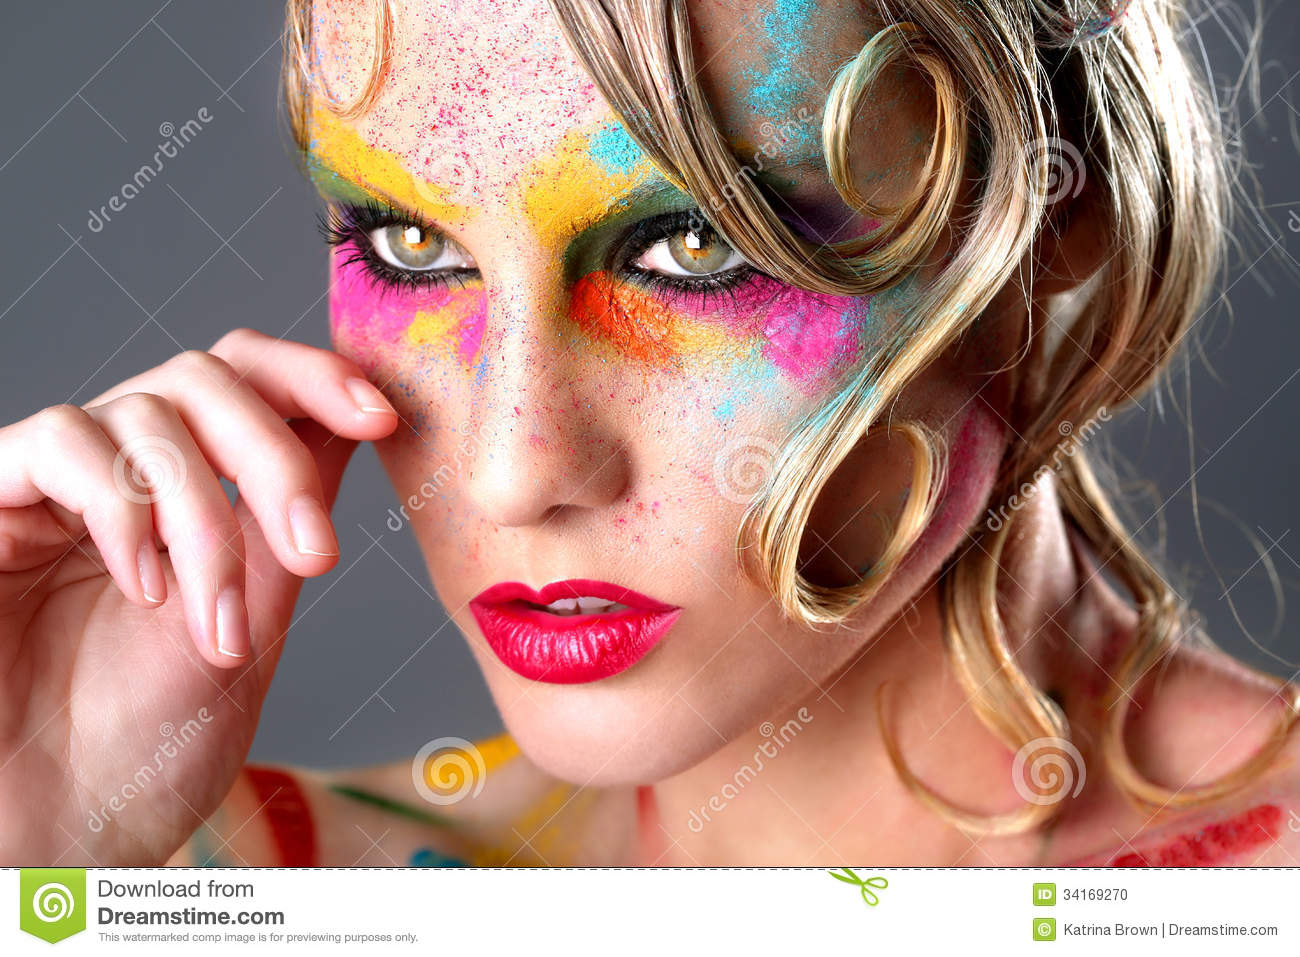 Woman With Extreme Makeup Design With Colorful Powder ...